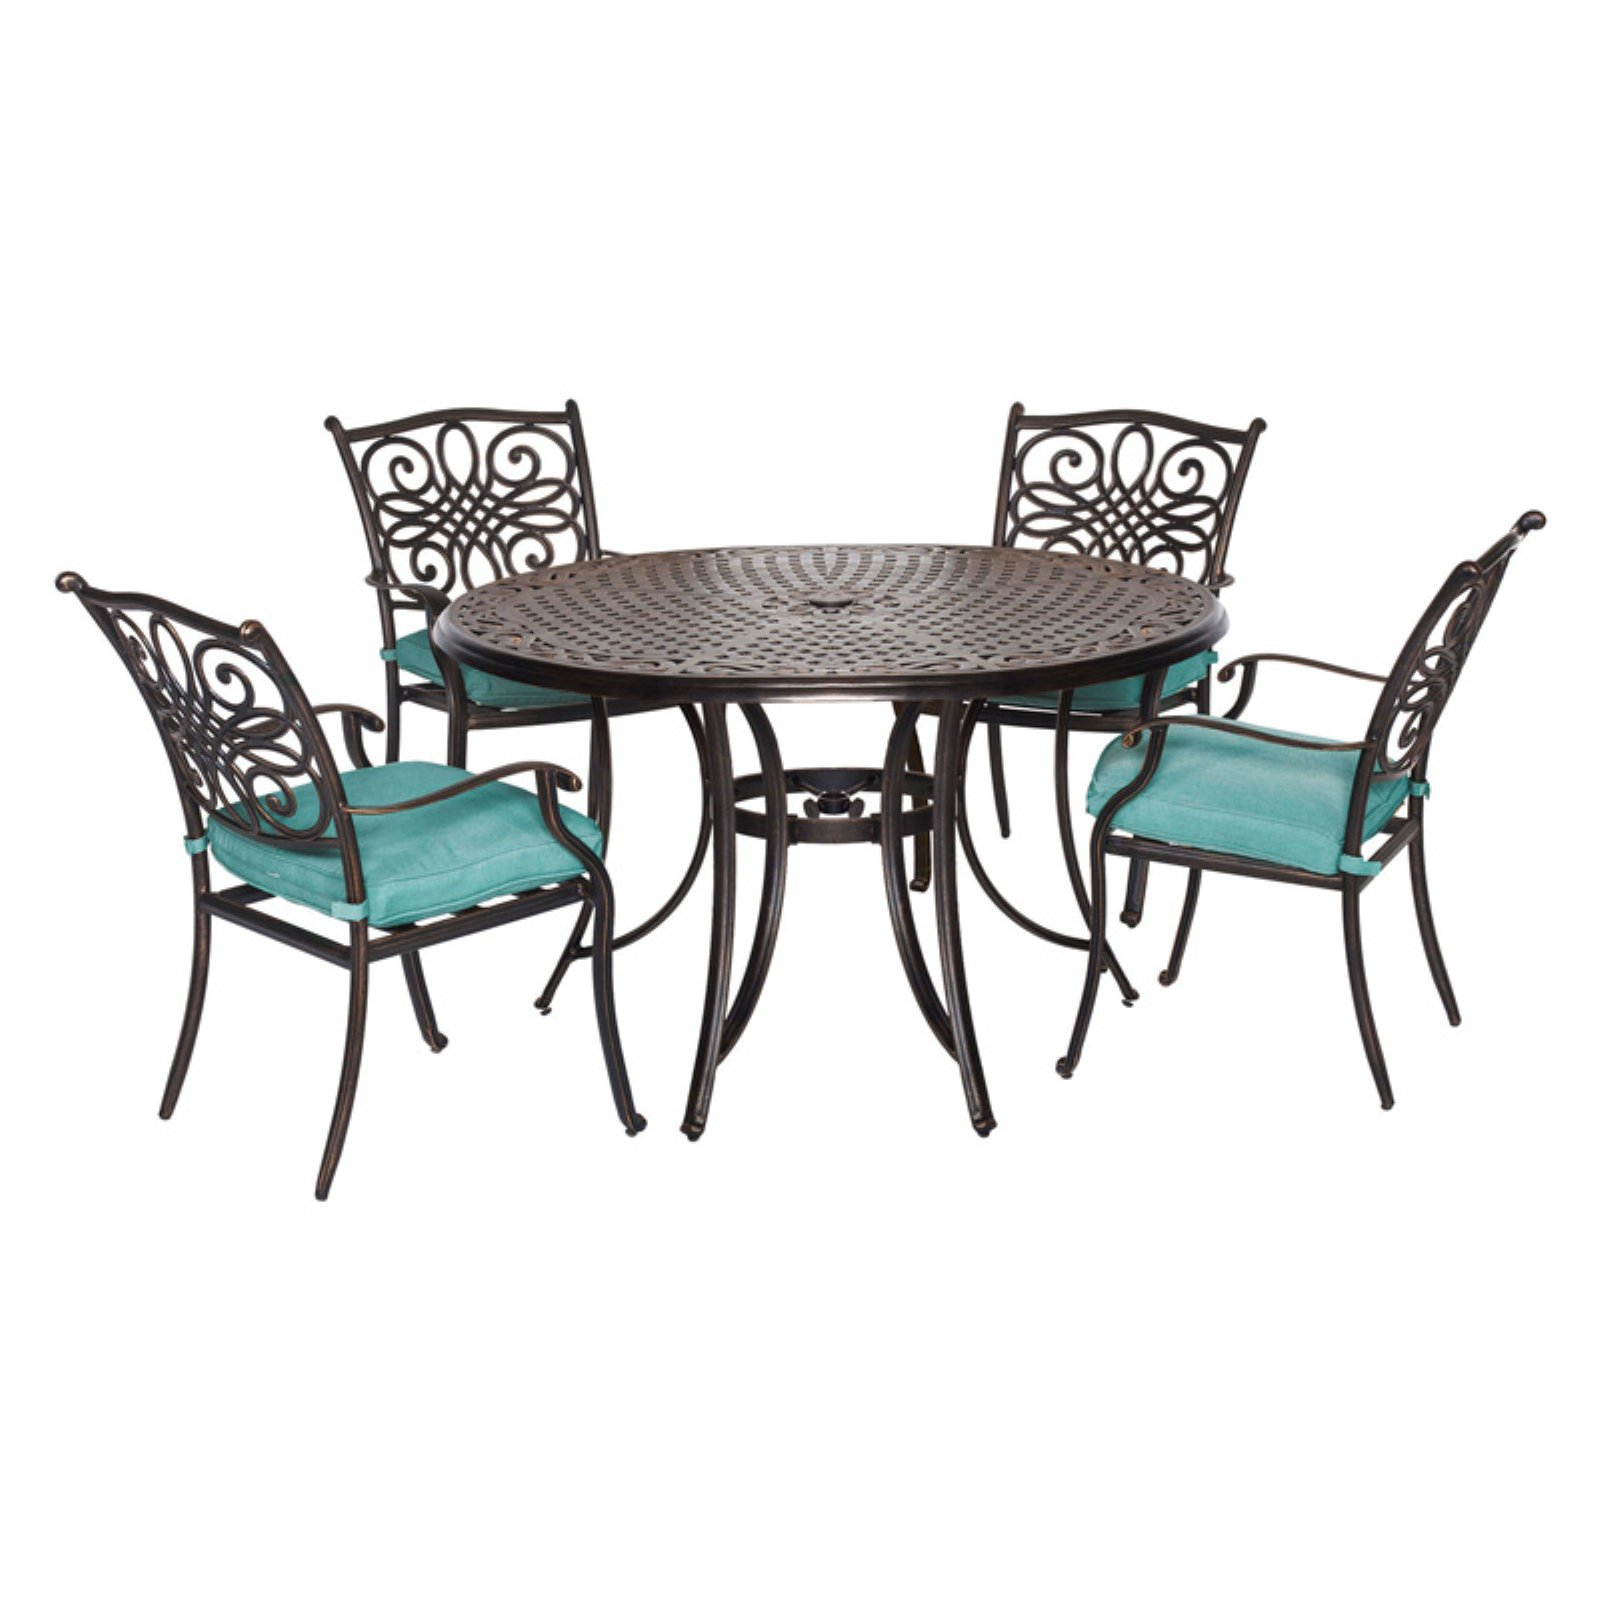 Hanover Outdoor Traditions 5 Piece Patio Dining Set